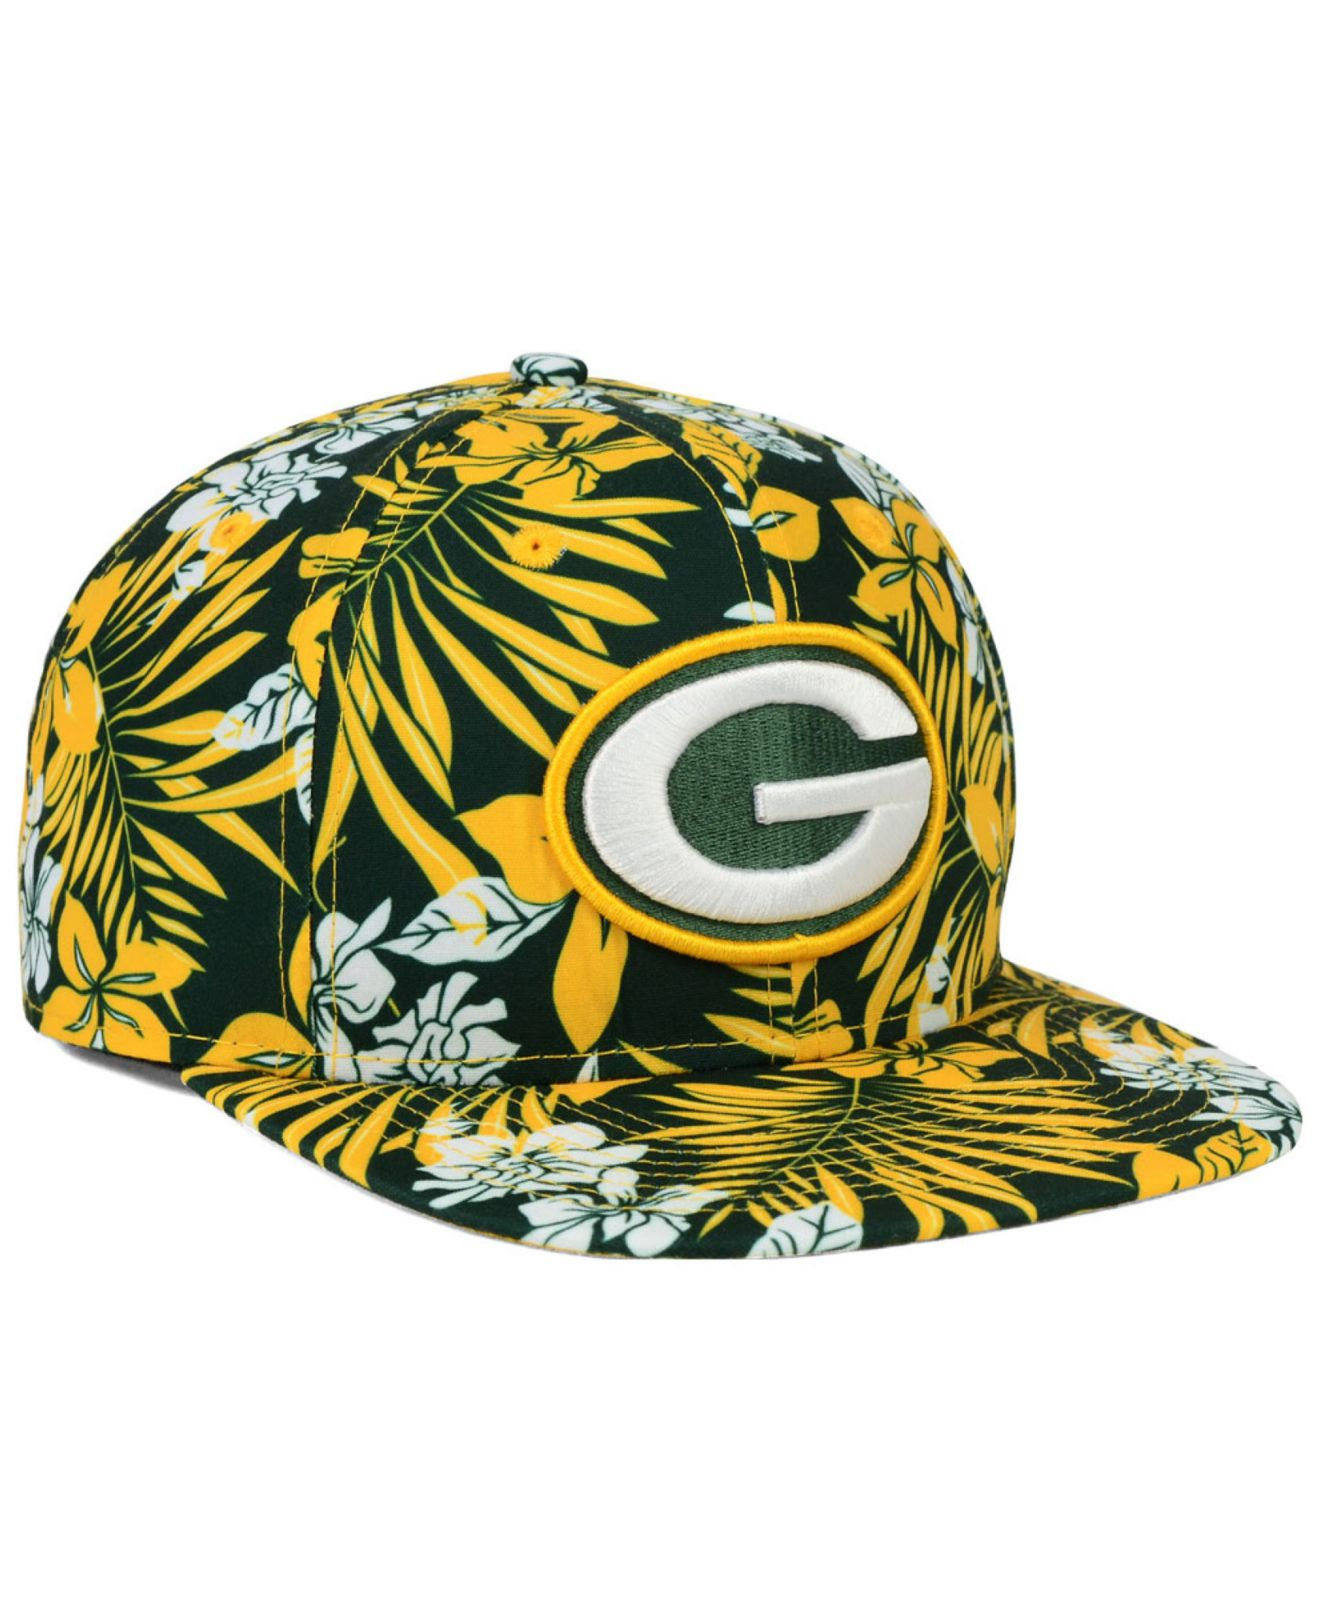 look for 5a41f 0db51 ... low cost lyst ktz green bay packers wowie 9fifty snapback cap in green  for men c2b9a